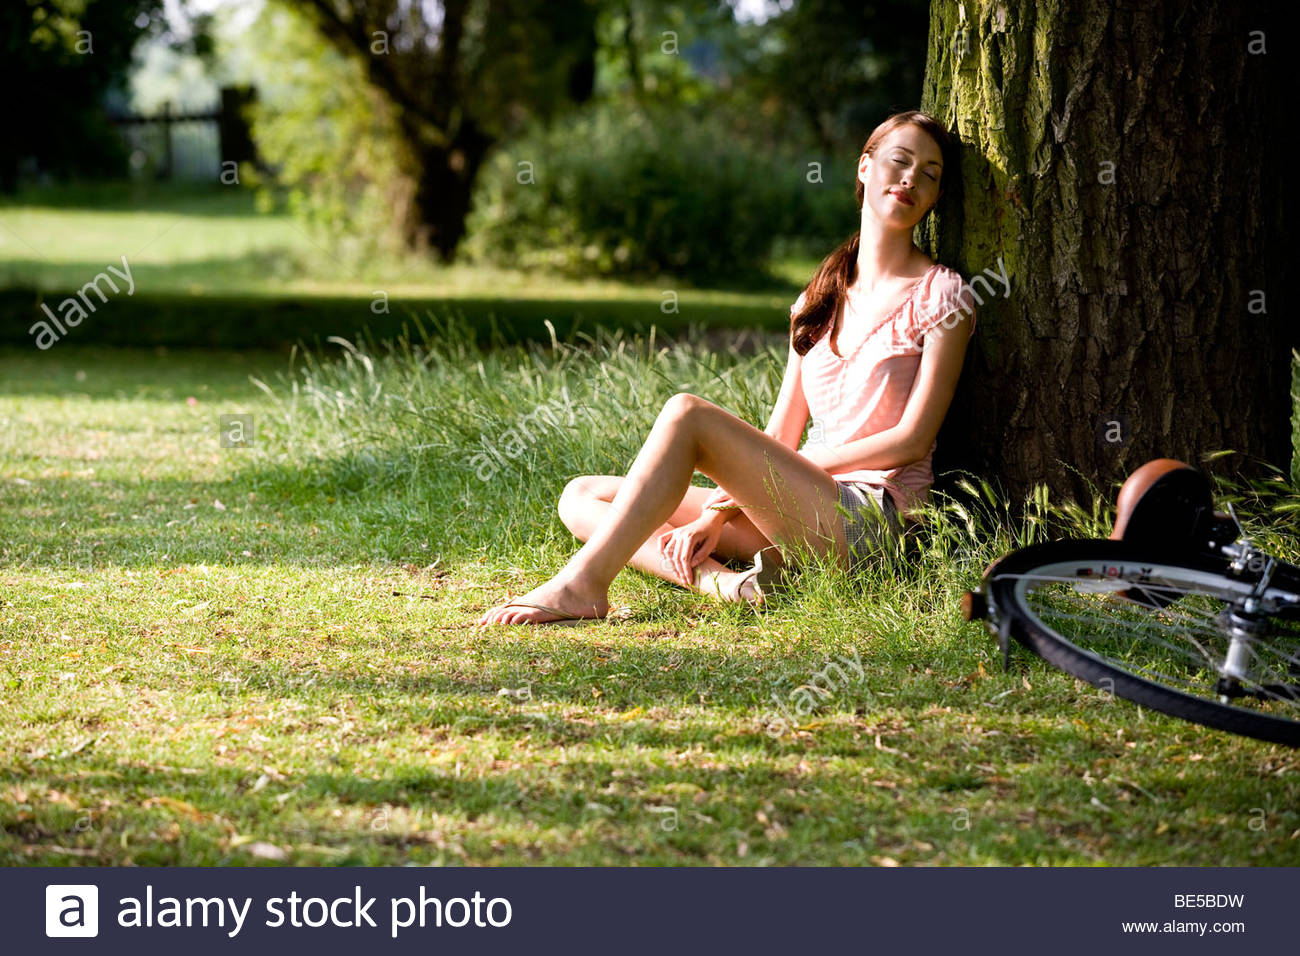 A young woman resting up against a tree trunk - Stock Image